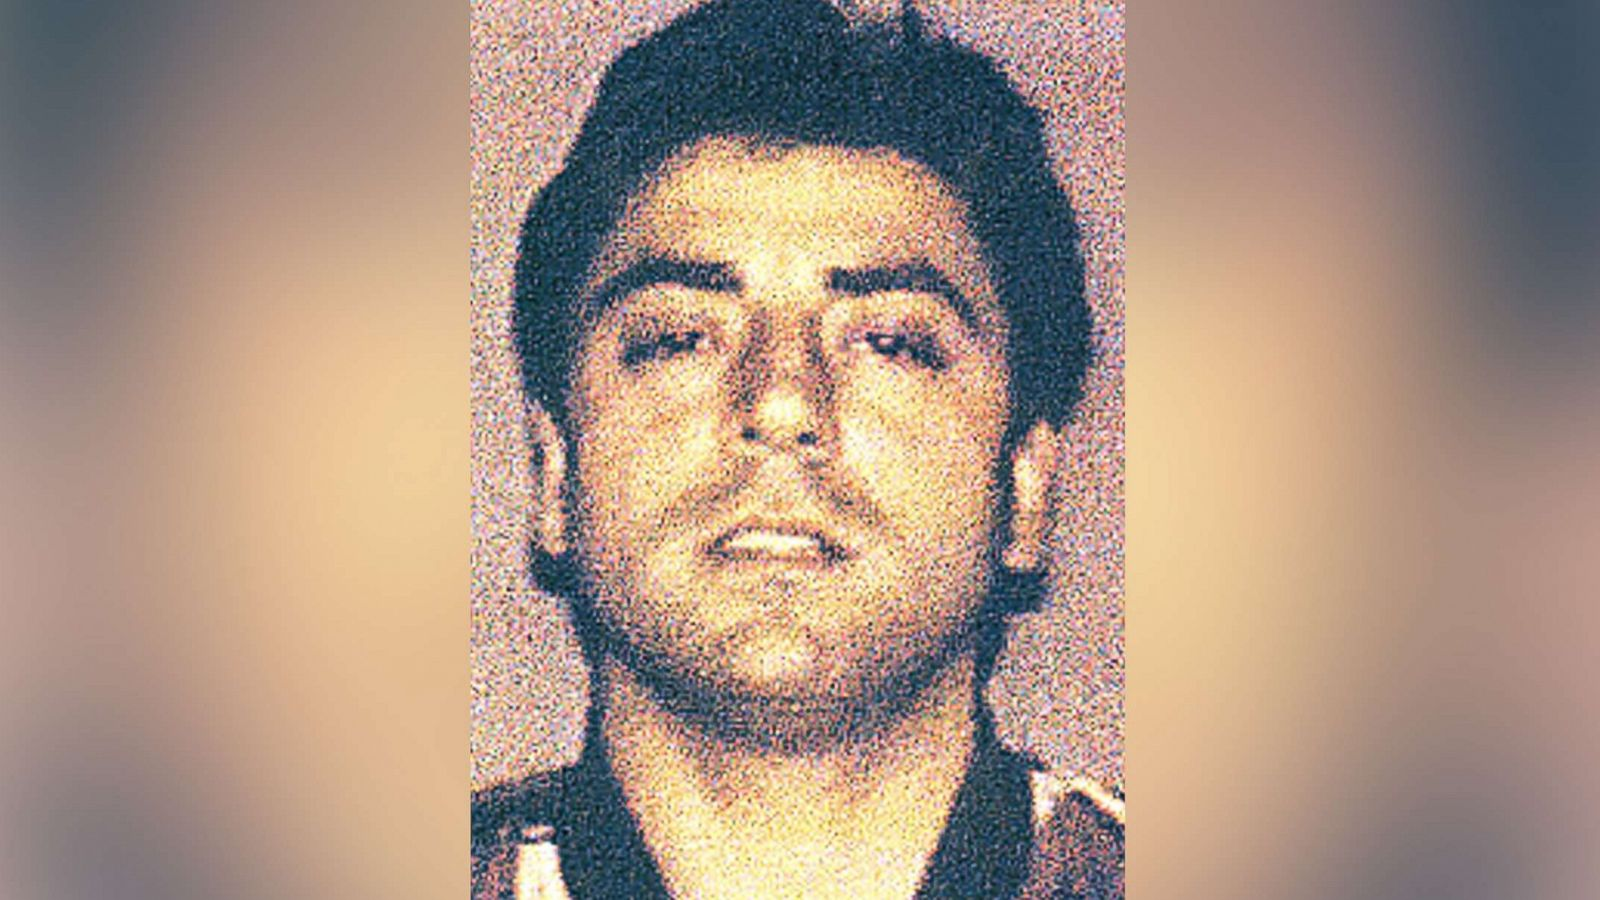 A look into 'Franky Boy' Cali — the alleged mob boss